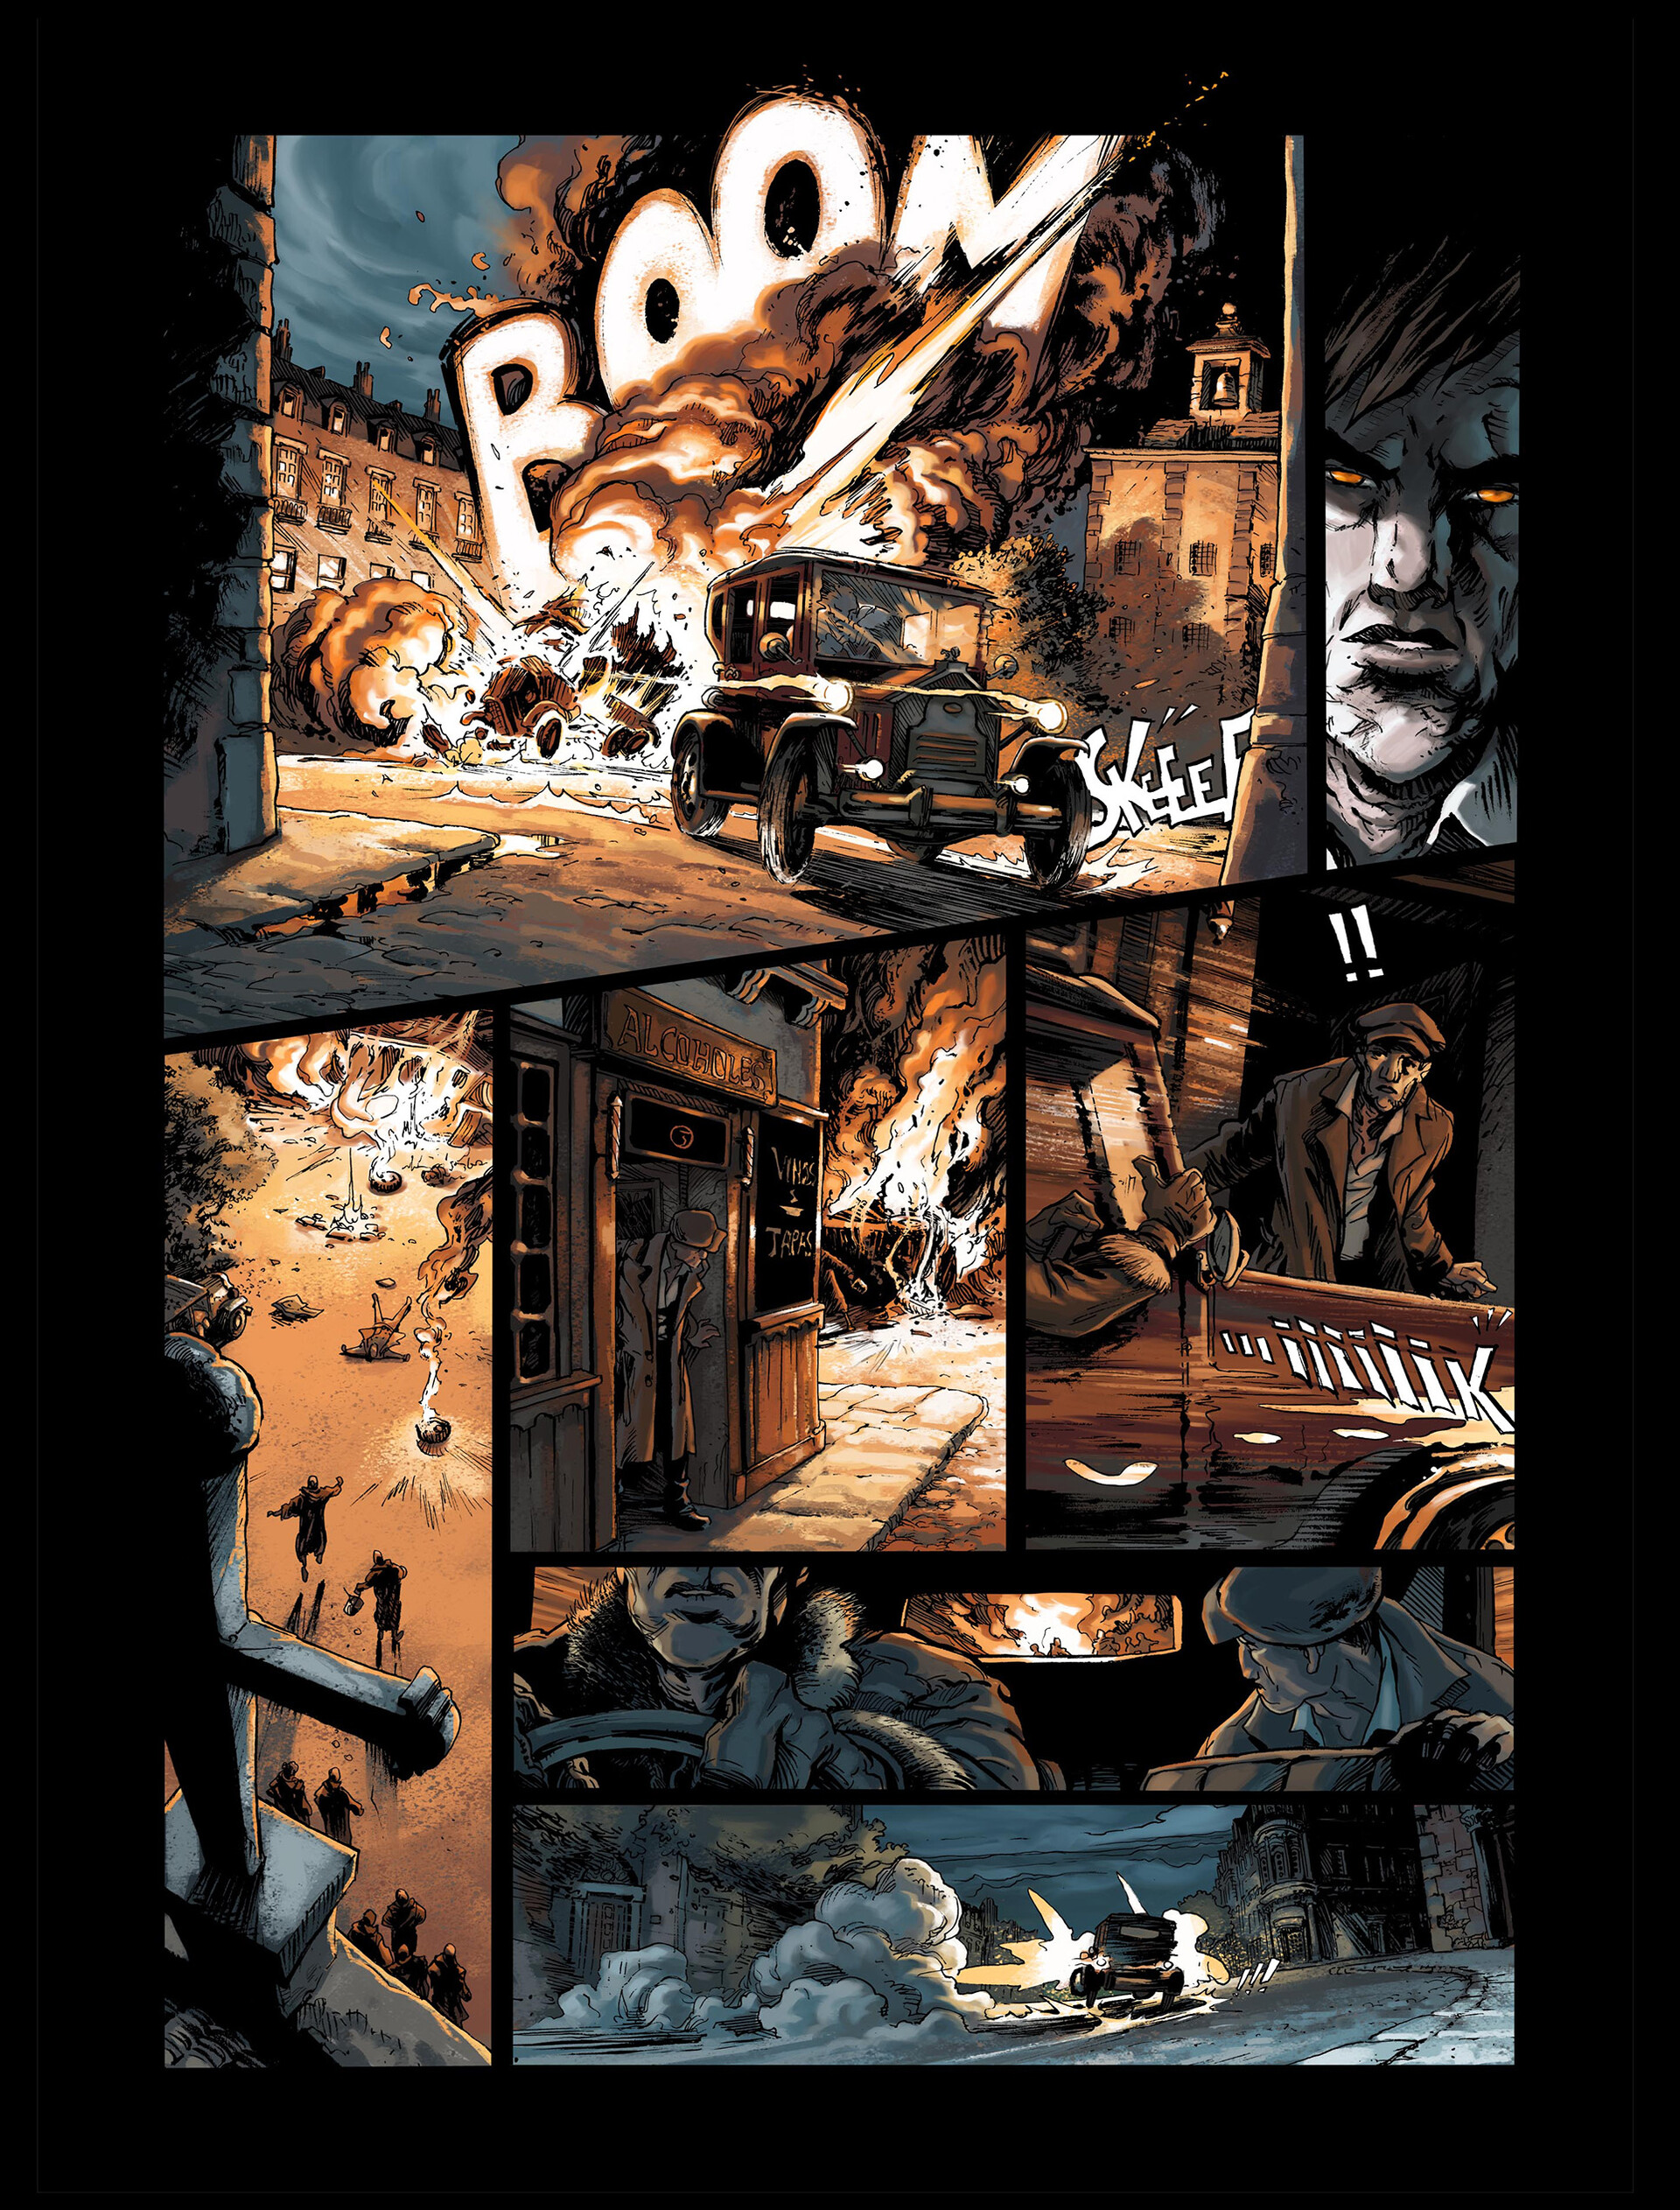 Tirso cons planche37finish2